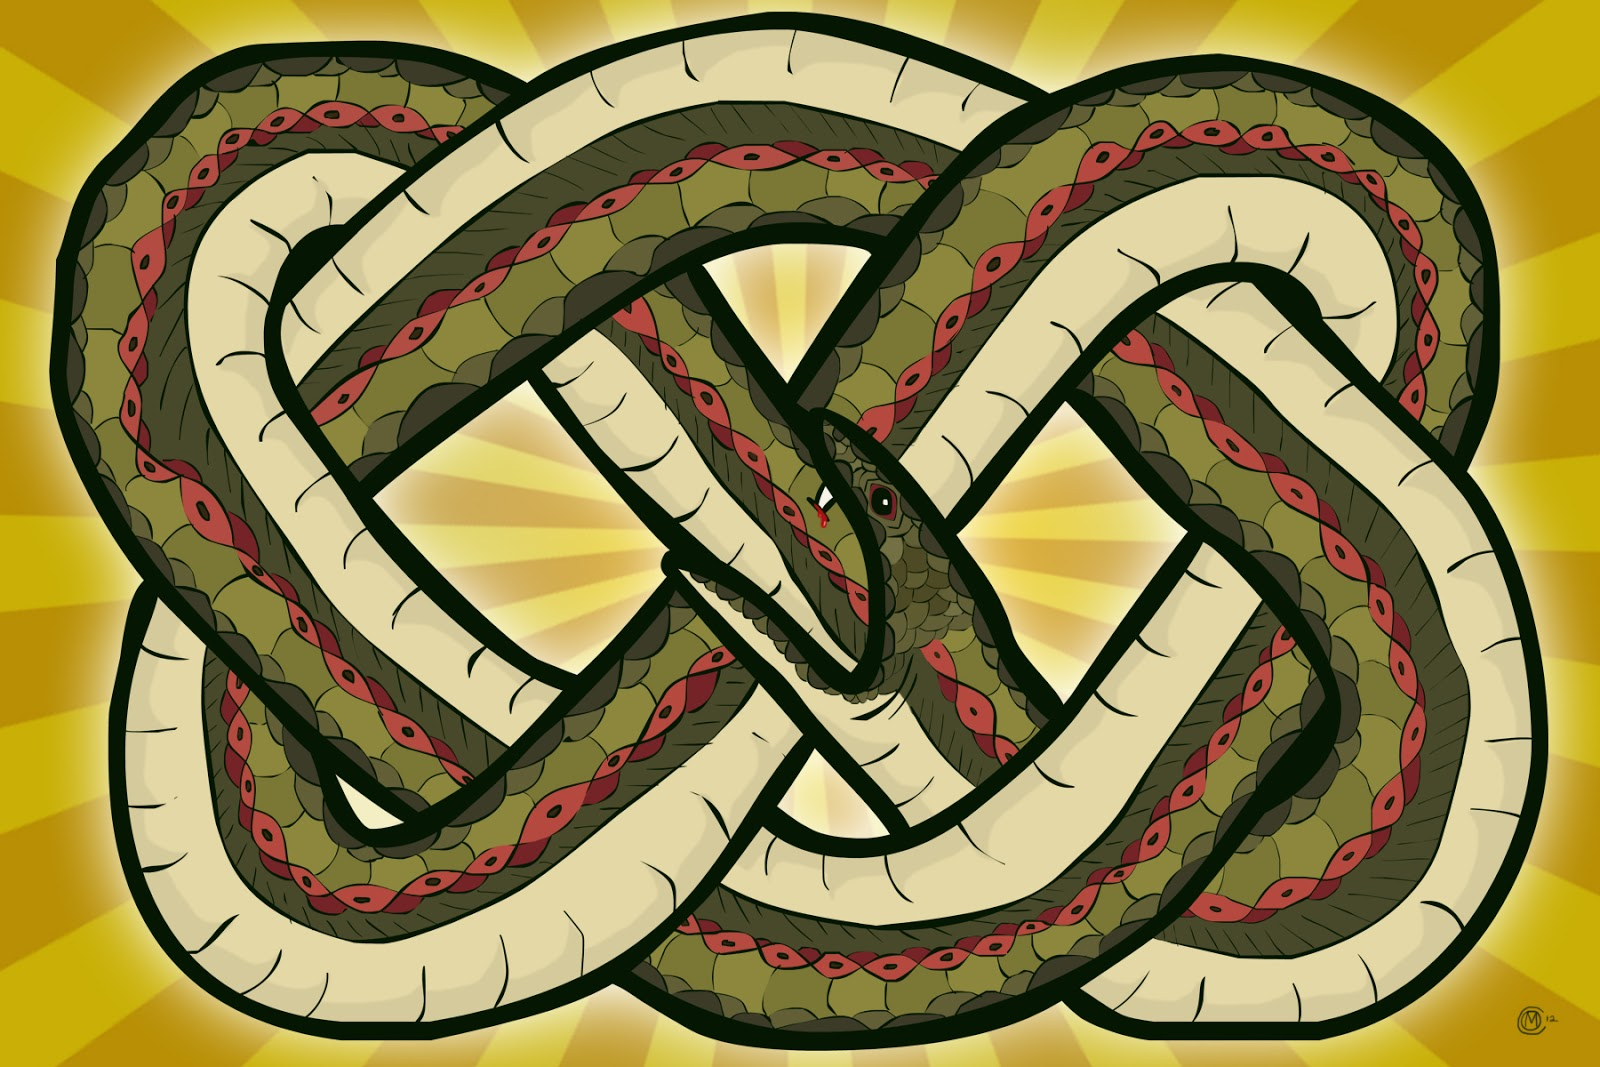 Drawn snake celtic knot Fun: Eating of O'Connell's itself